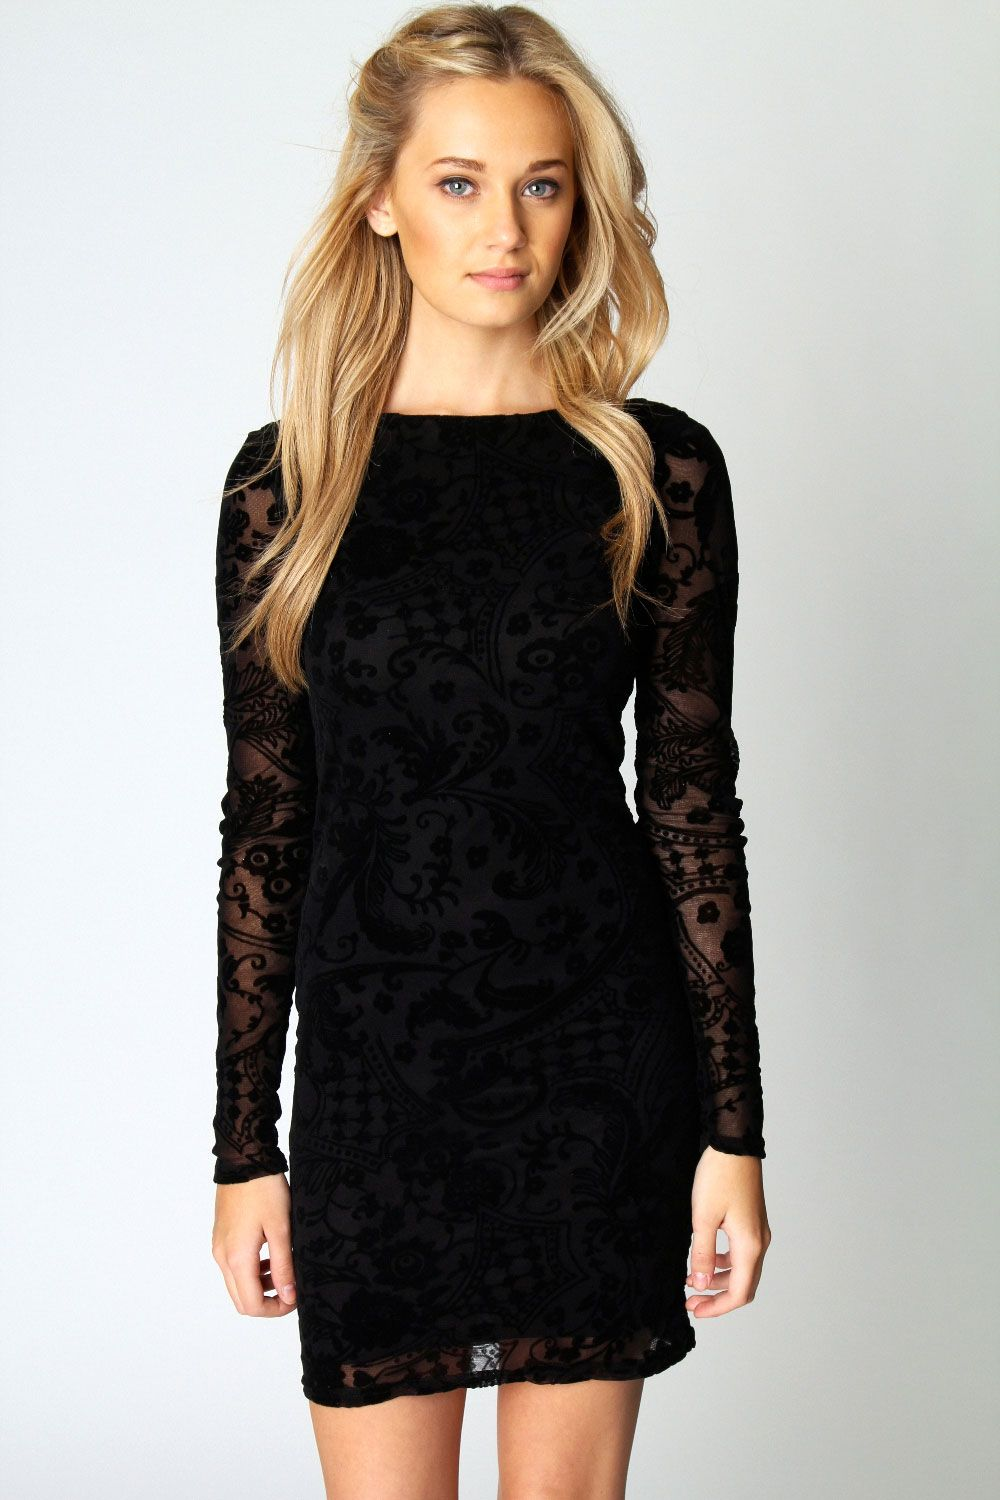 Top 10 Long Sleeve Dresses | Fashion Inspiration Blog | Clothes ...